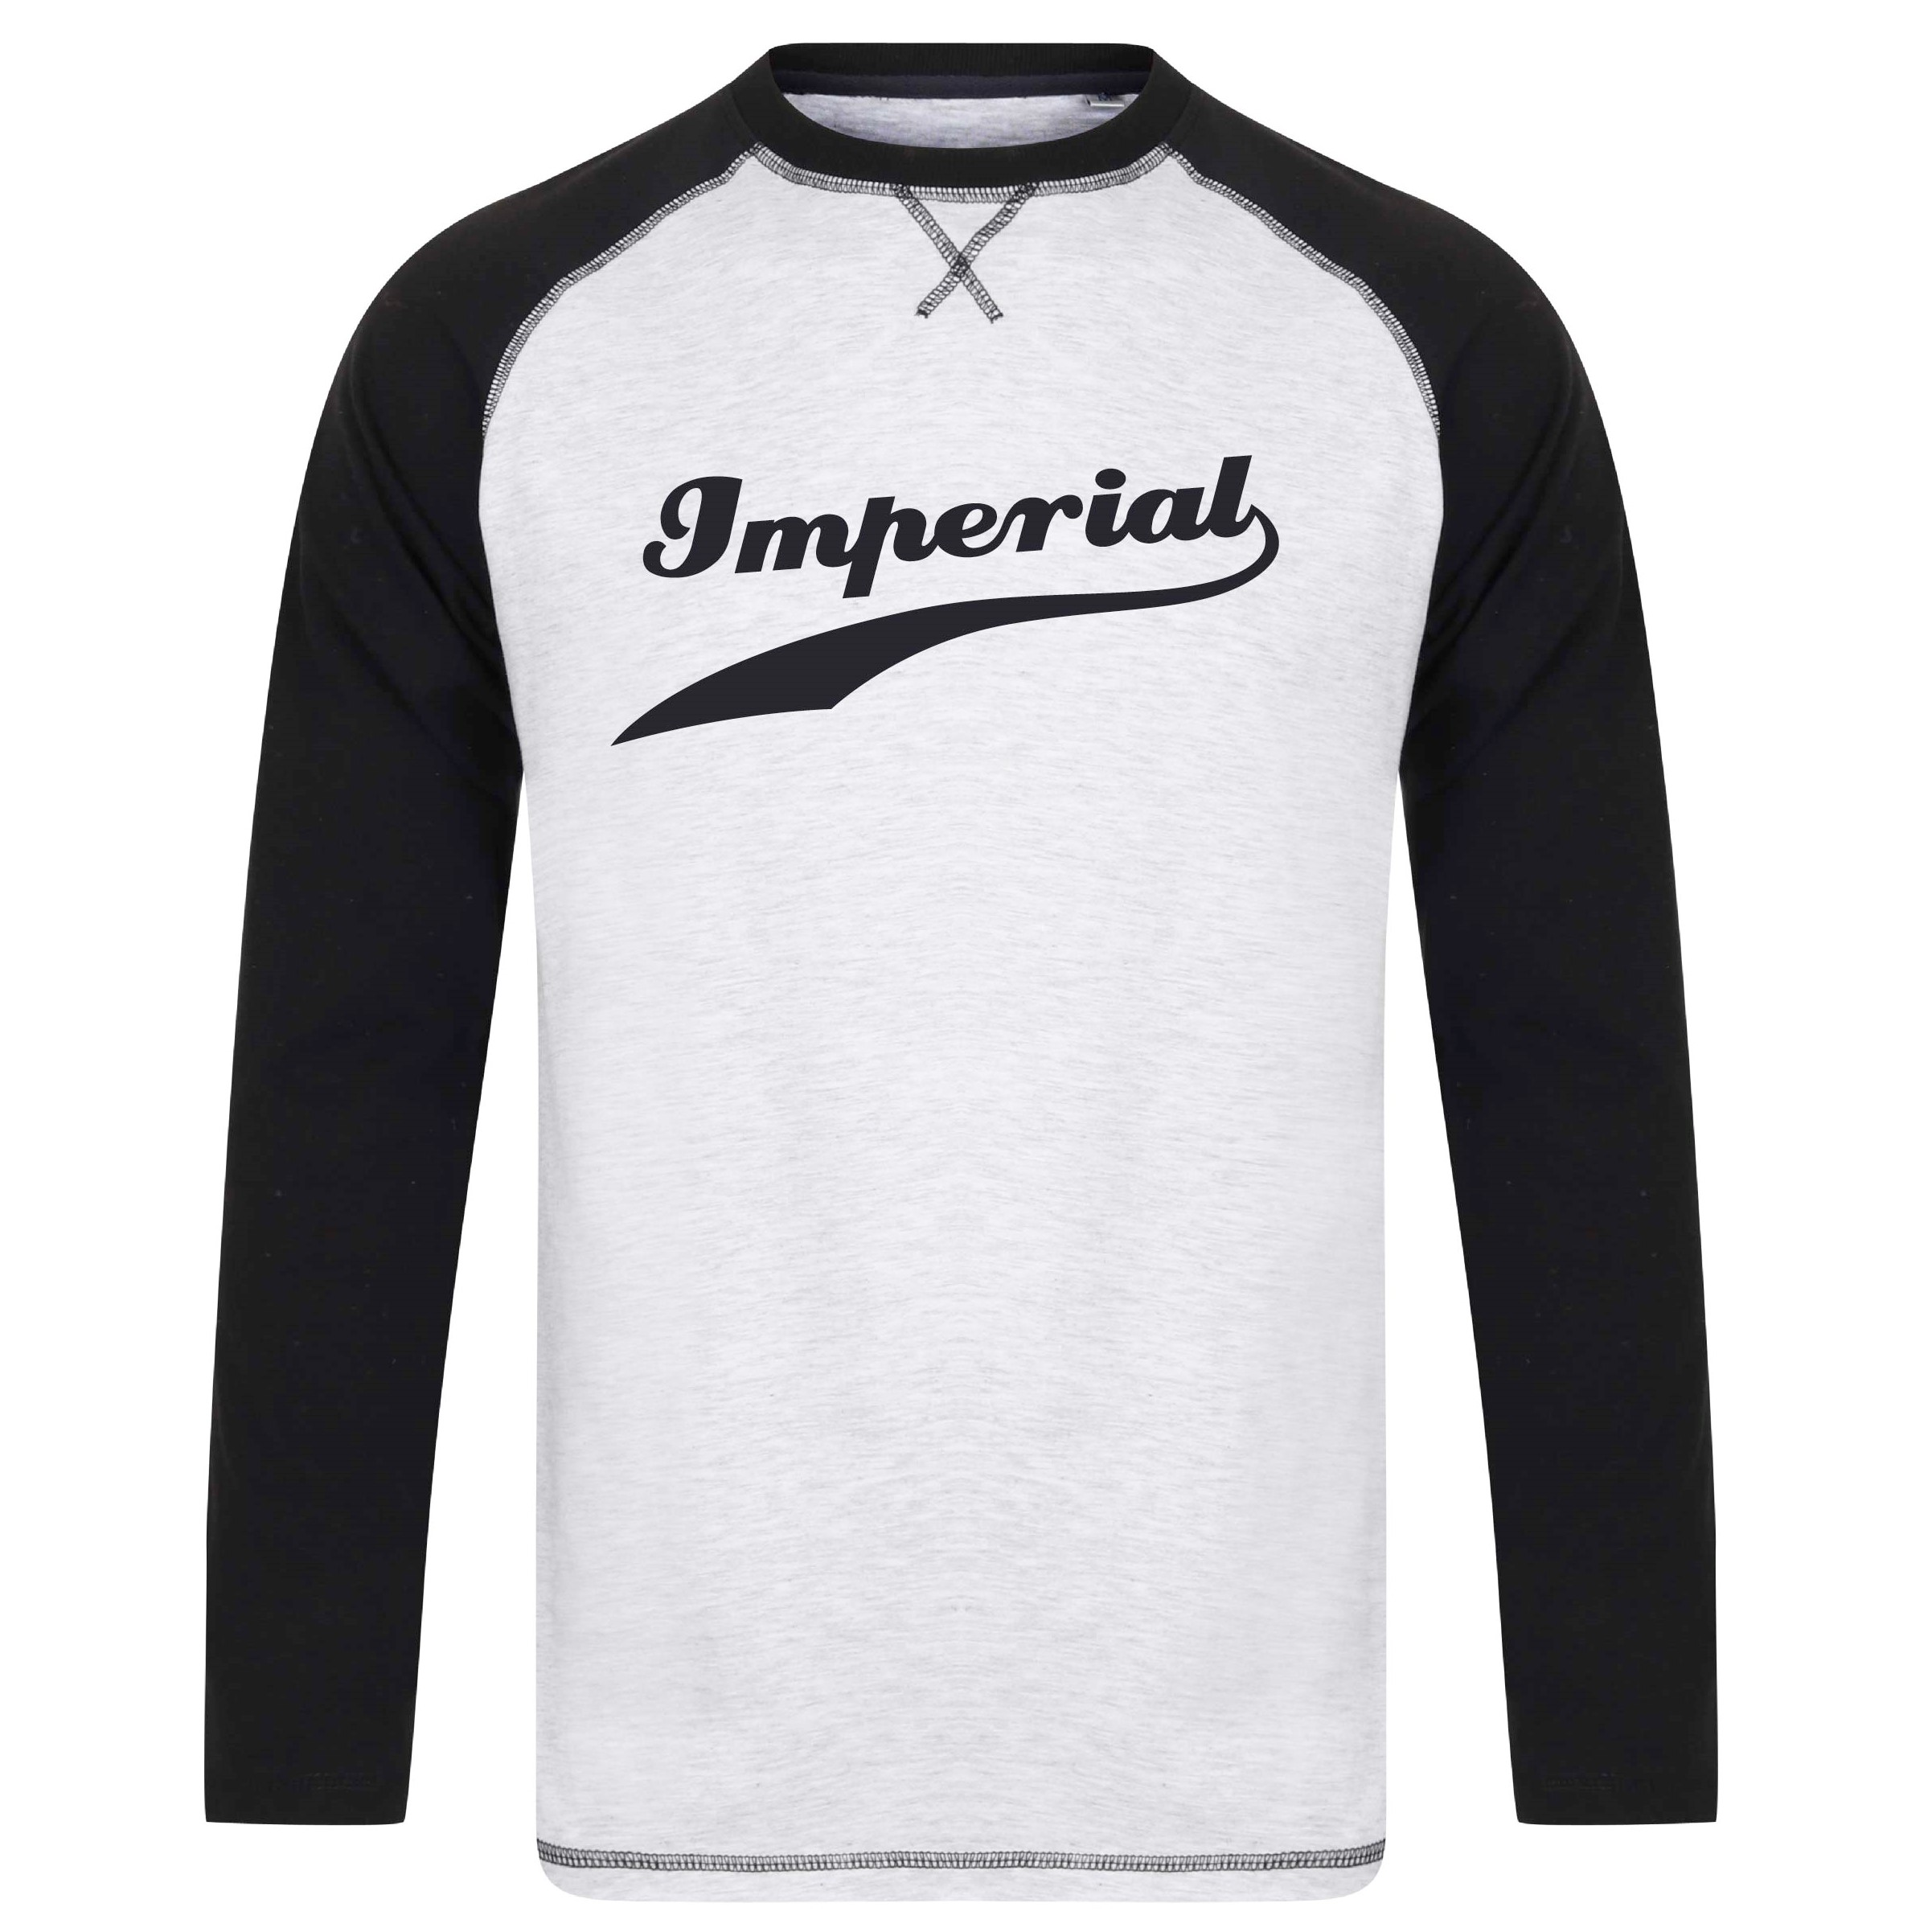 Imperial Swoosh L/S T-Shirt in Black